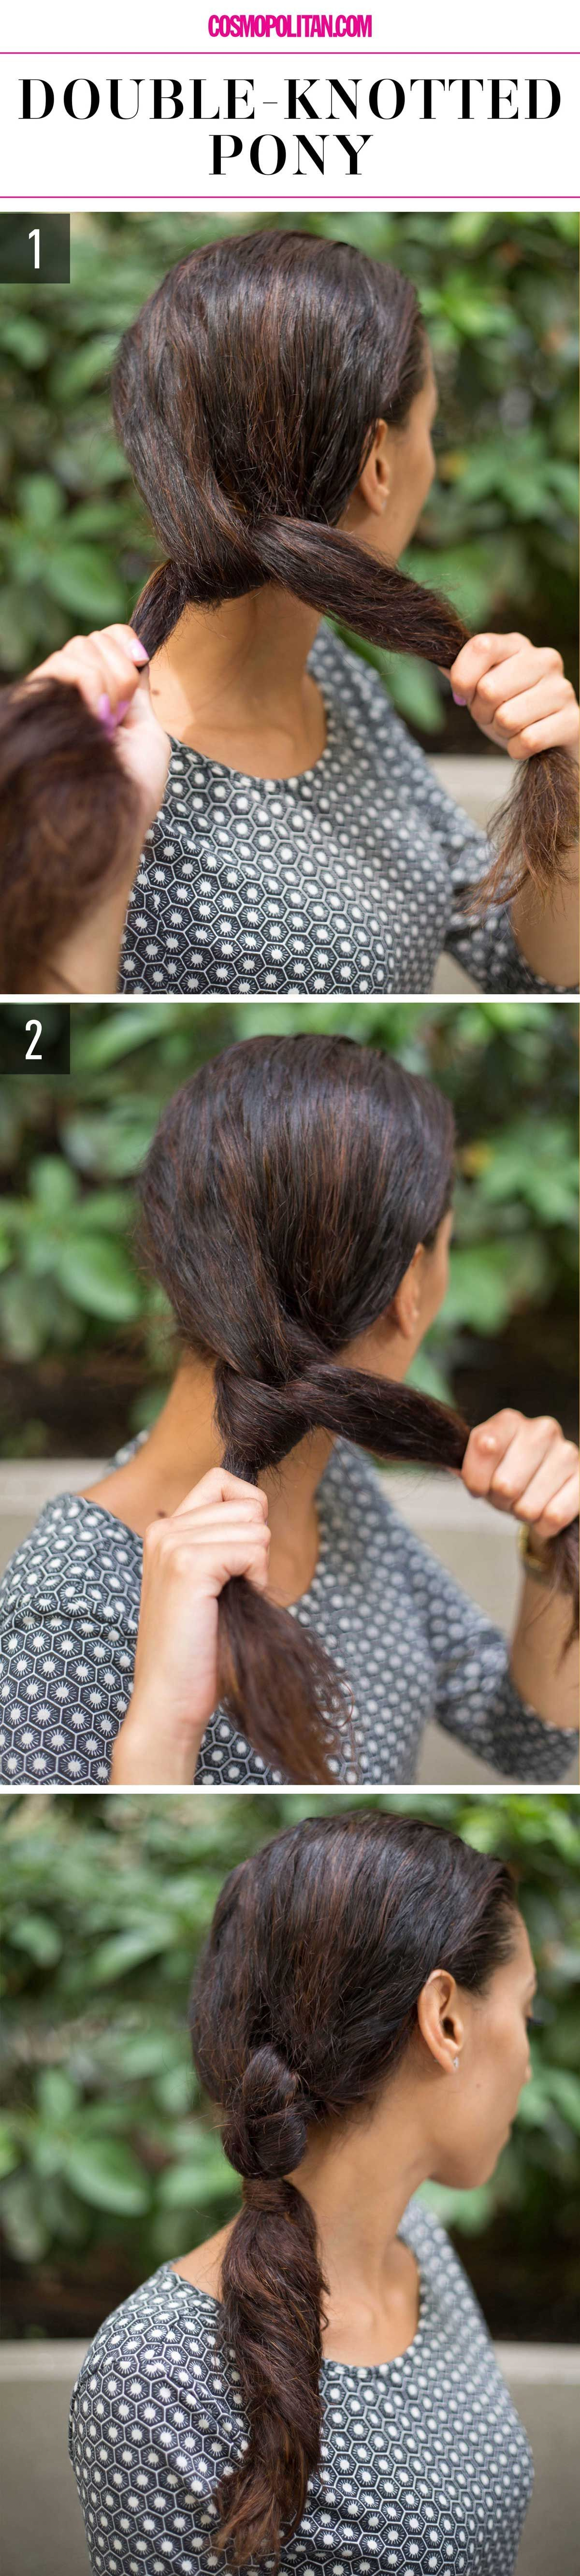 supereasy hairstyles for lazy girls who canut even pinterest